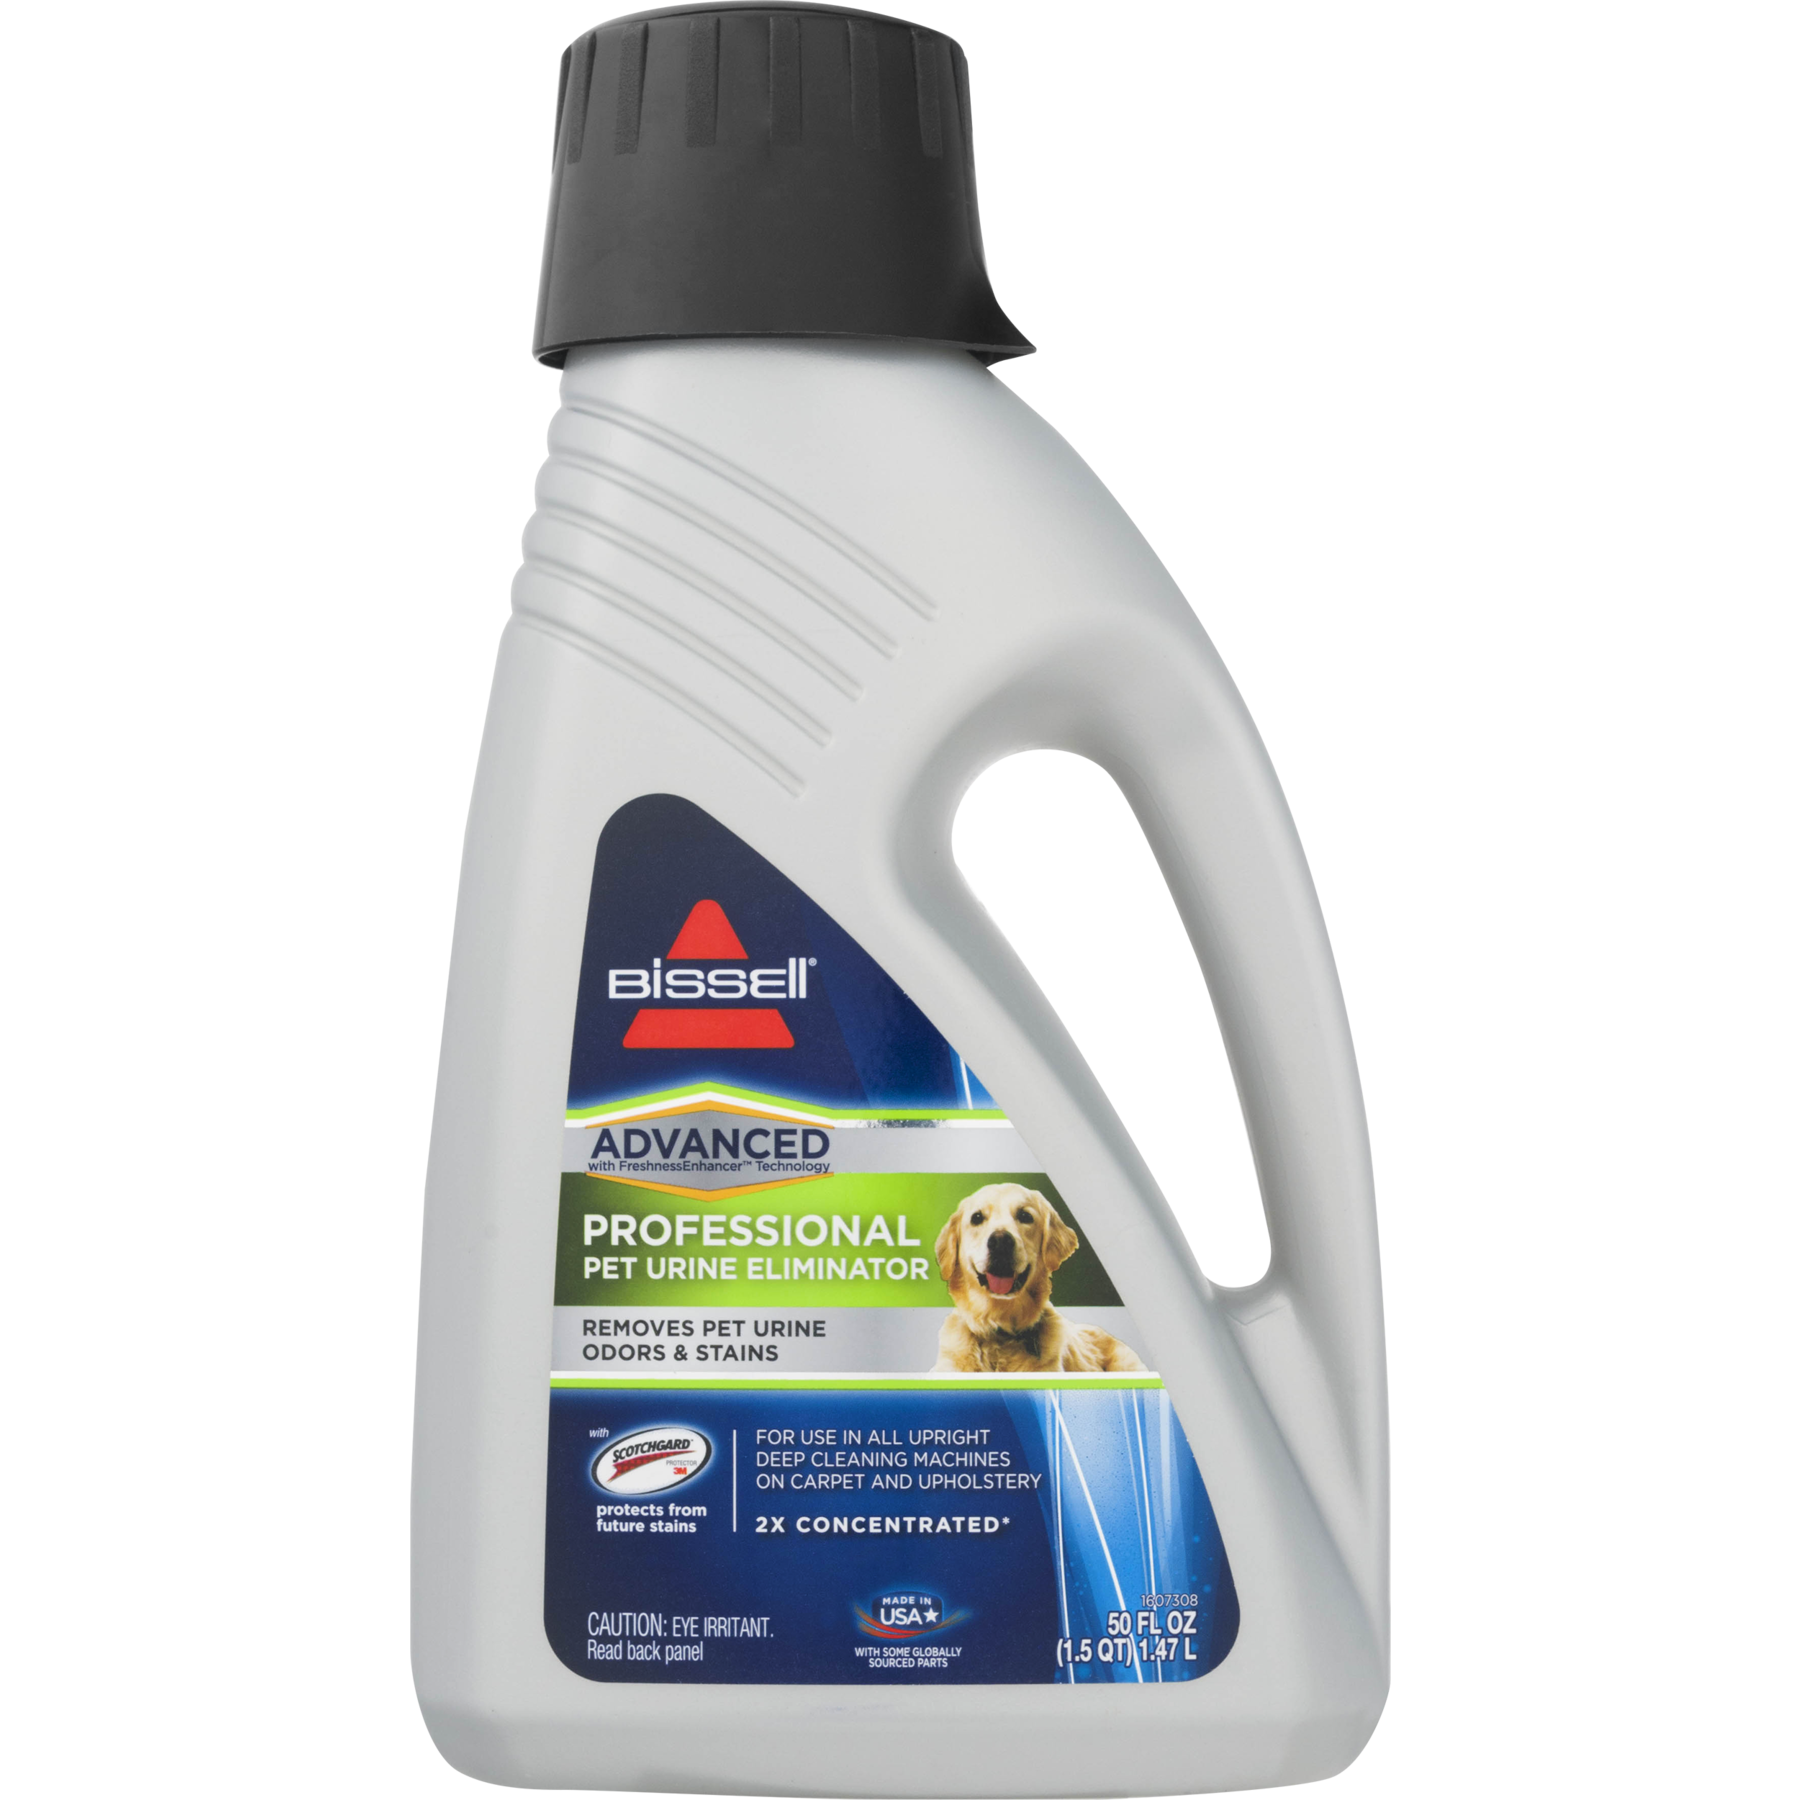 Bissell cleaning solution coupons